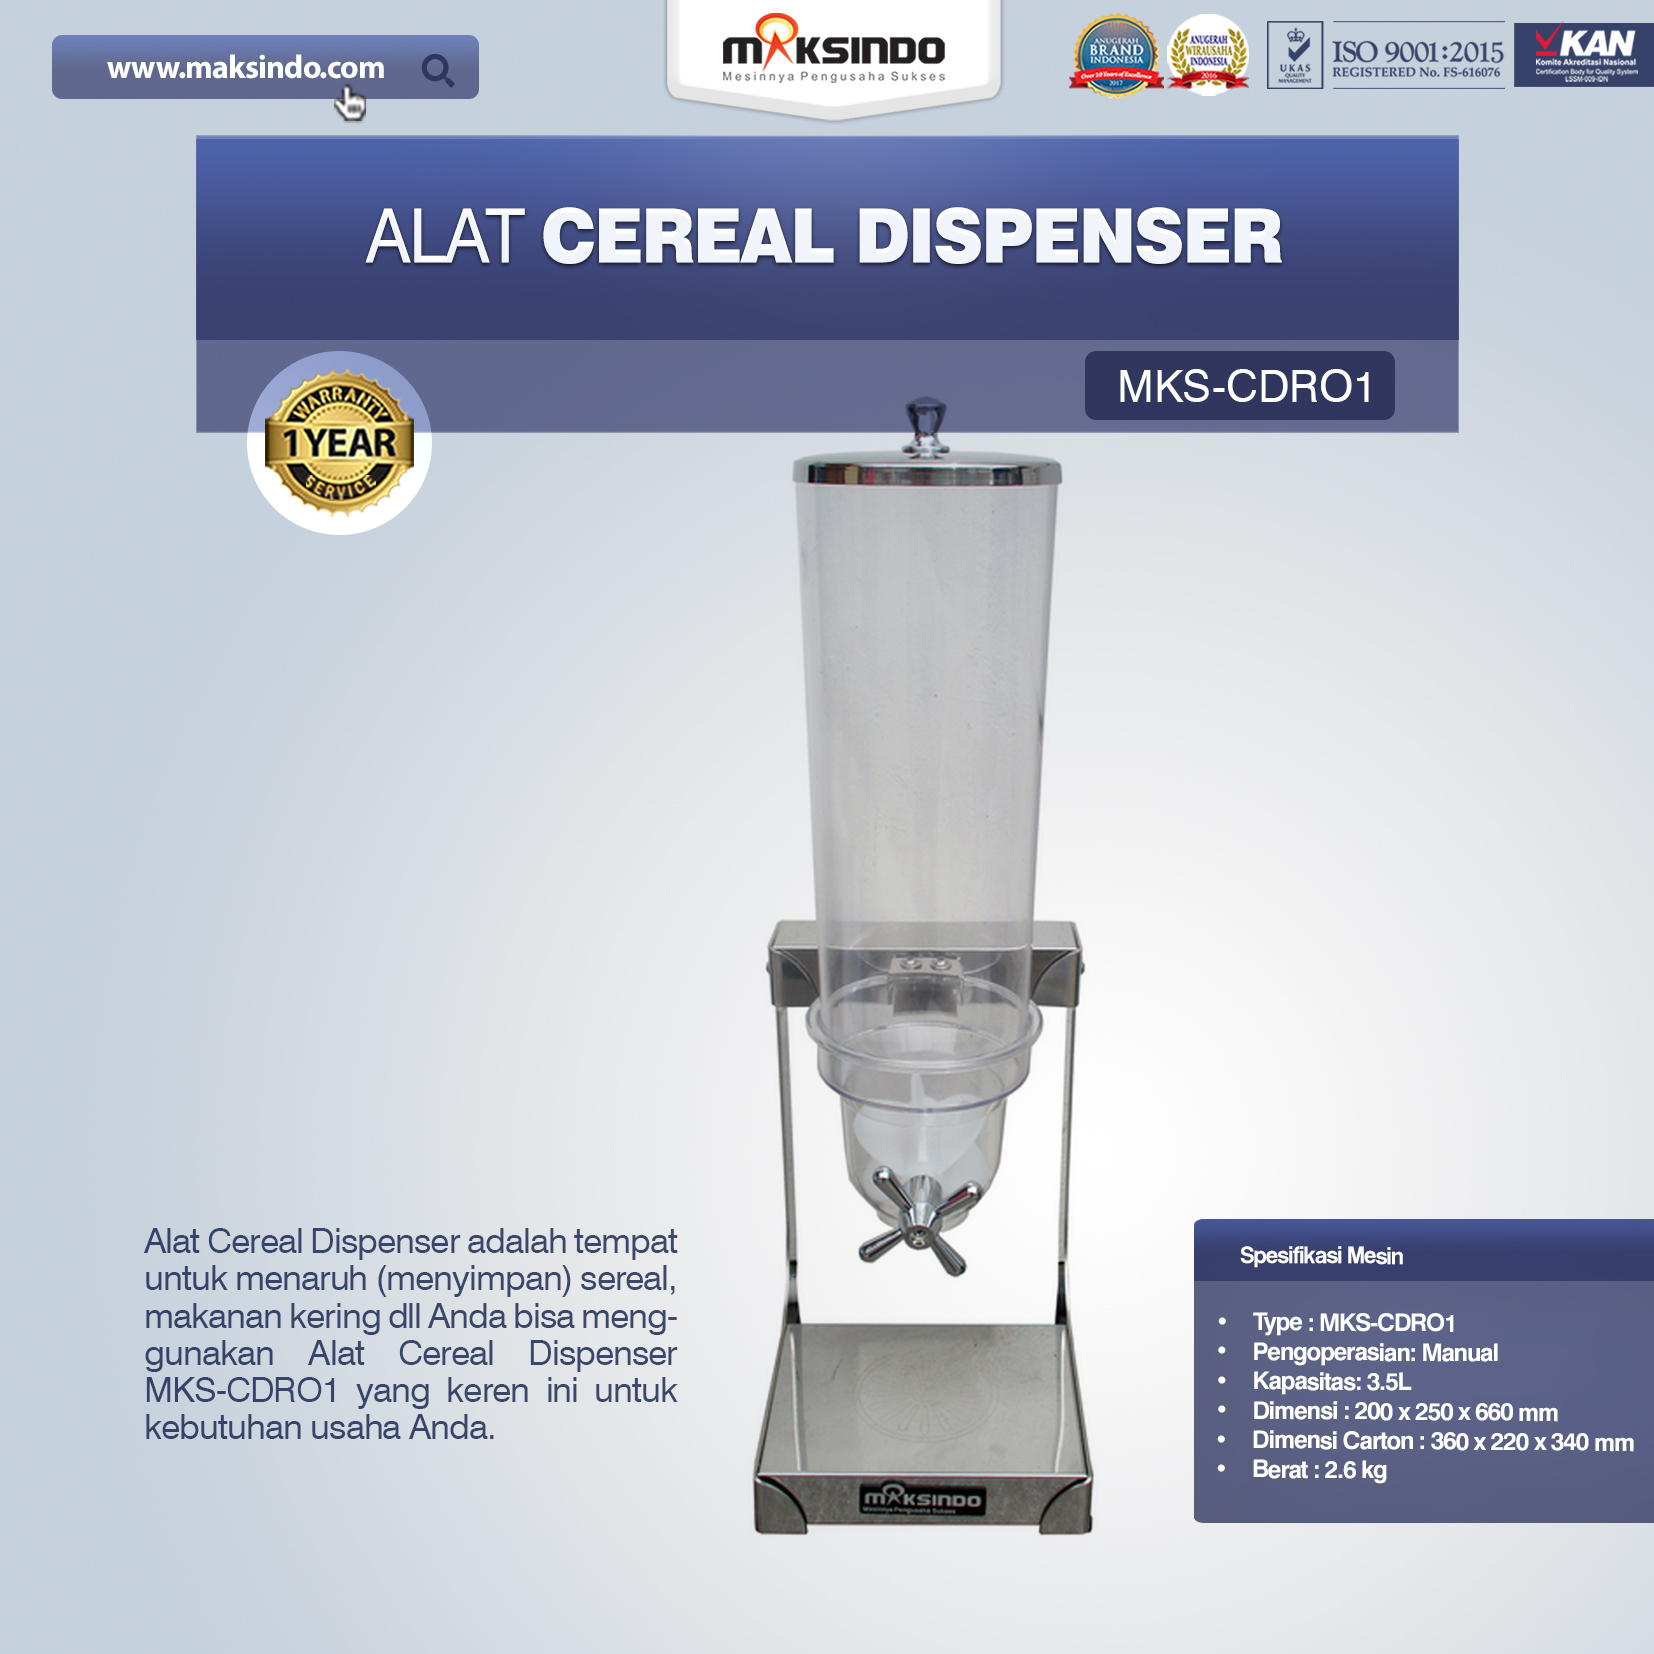 Alat Cereal Dispenser MKS-CDRO1